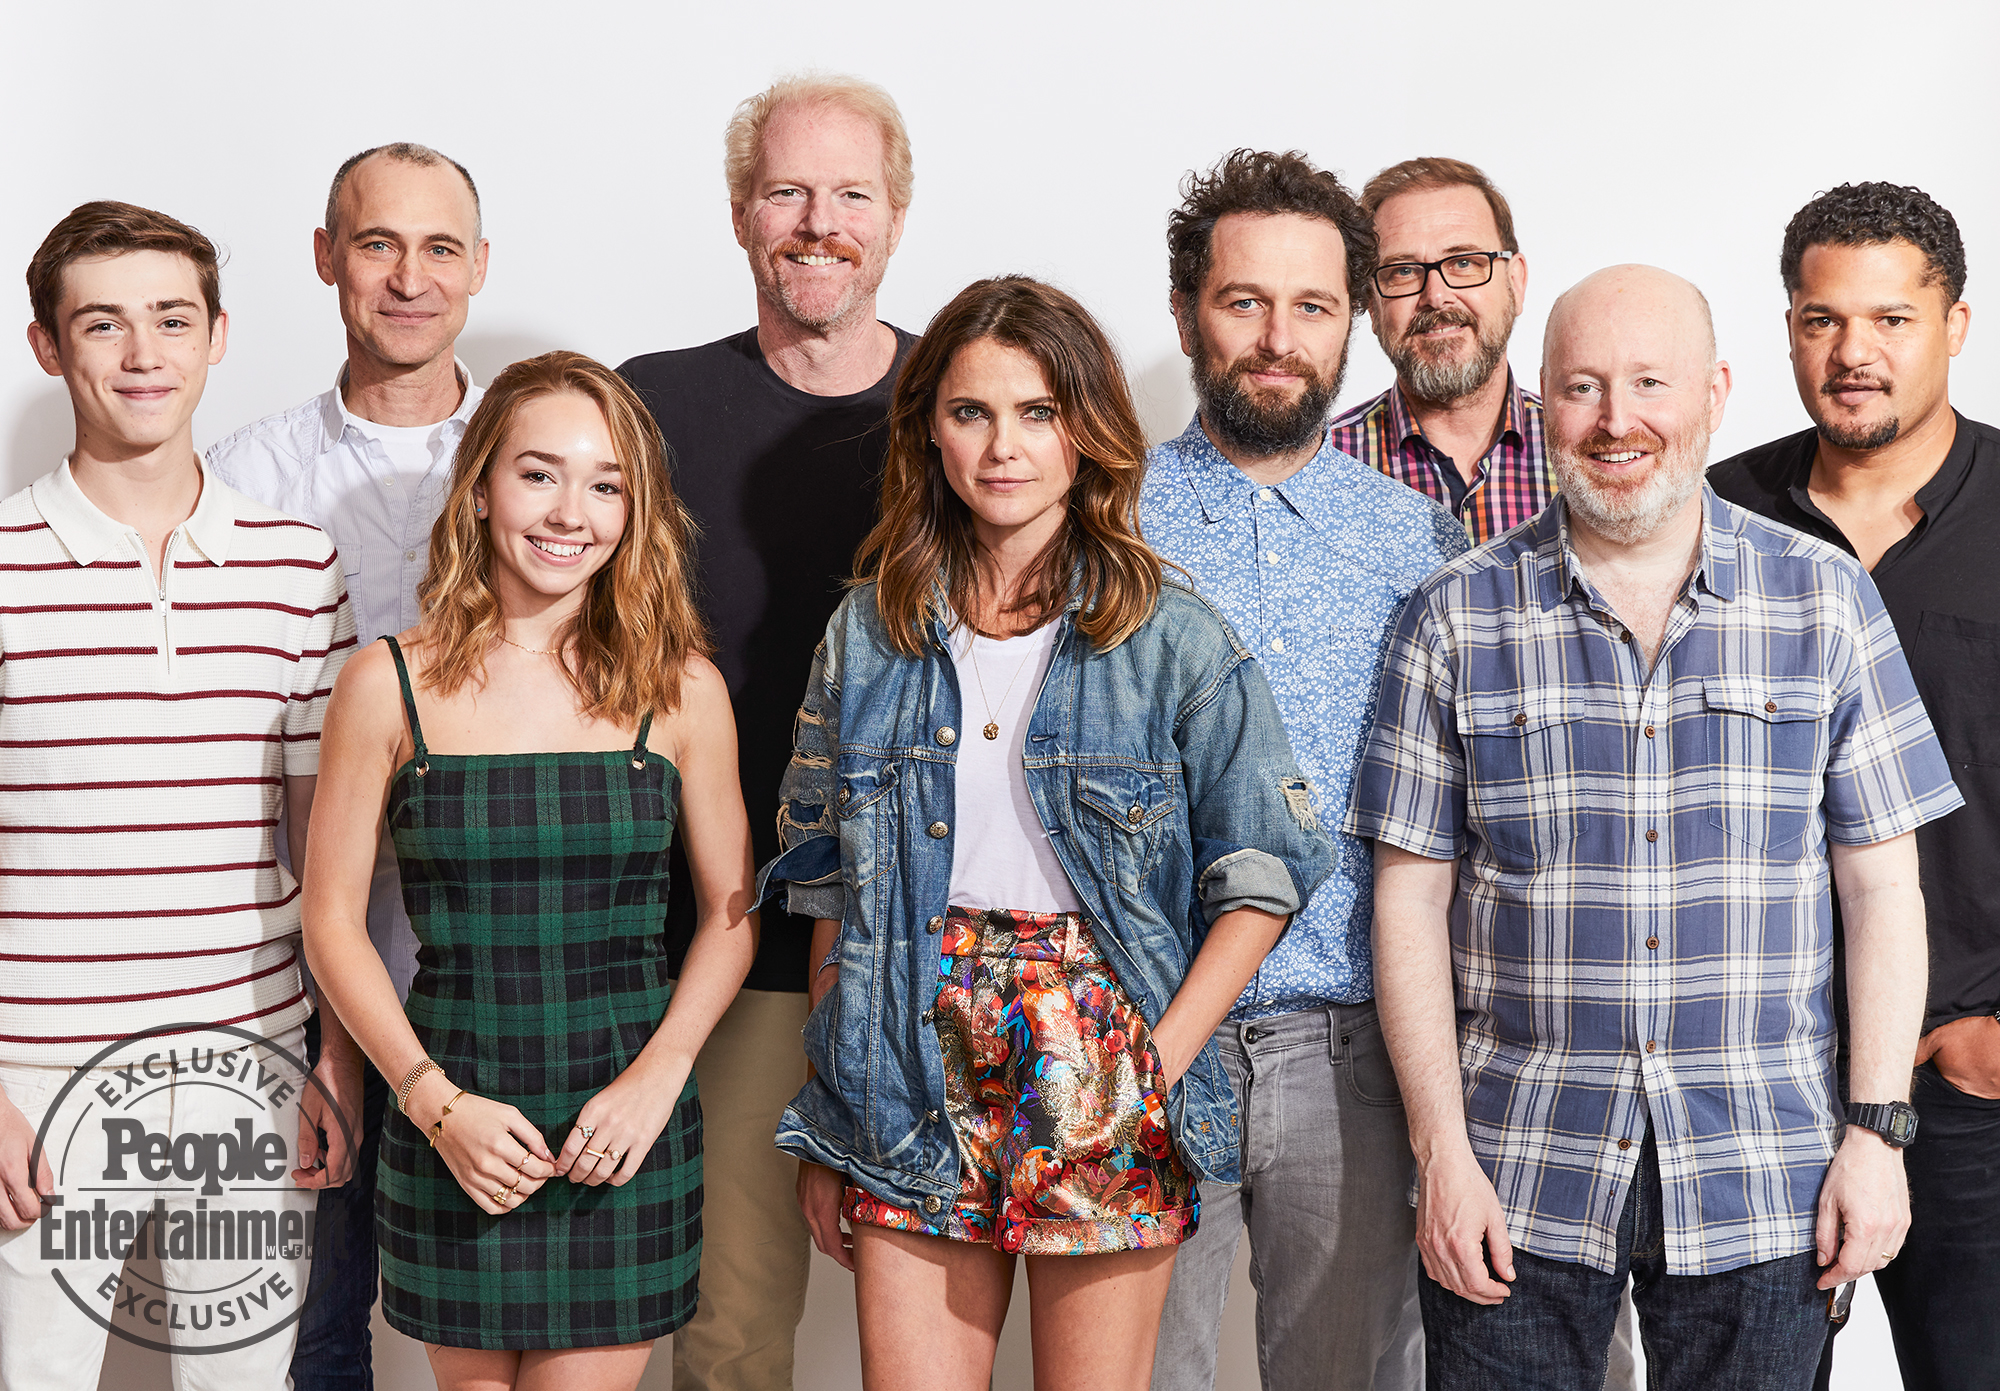 Joel Fields, Joe Weisberg, Chris Long, Keri Russell, Matthew Rhys, Noah Emmerich, Holly Taylor, Keidrich Sellati, Brandon J. Dirden